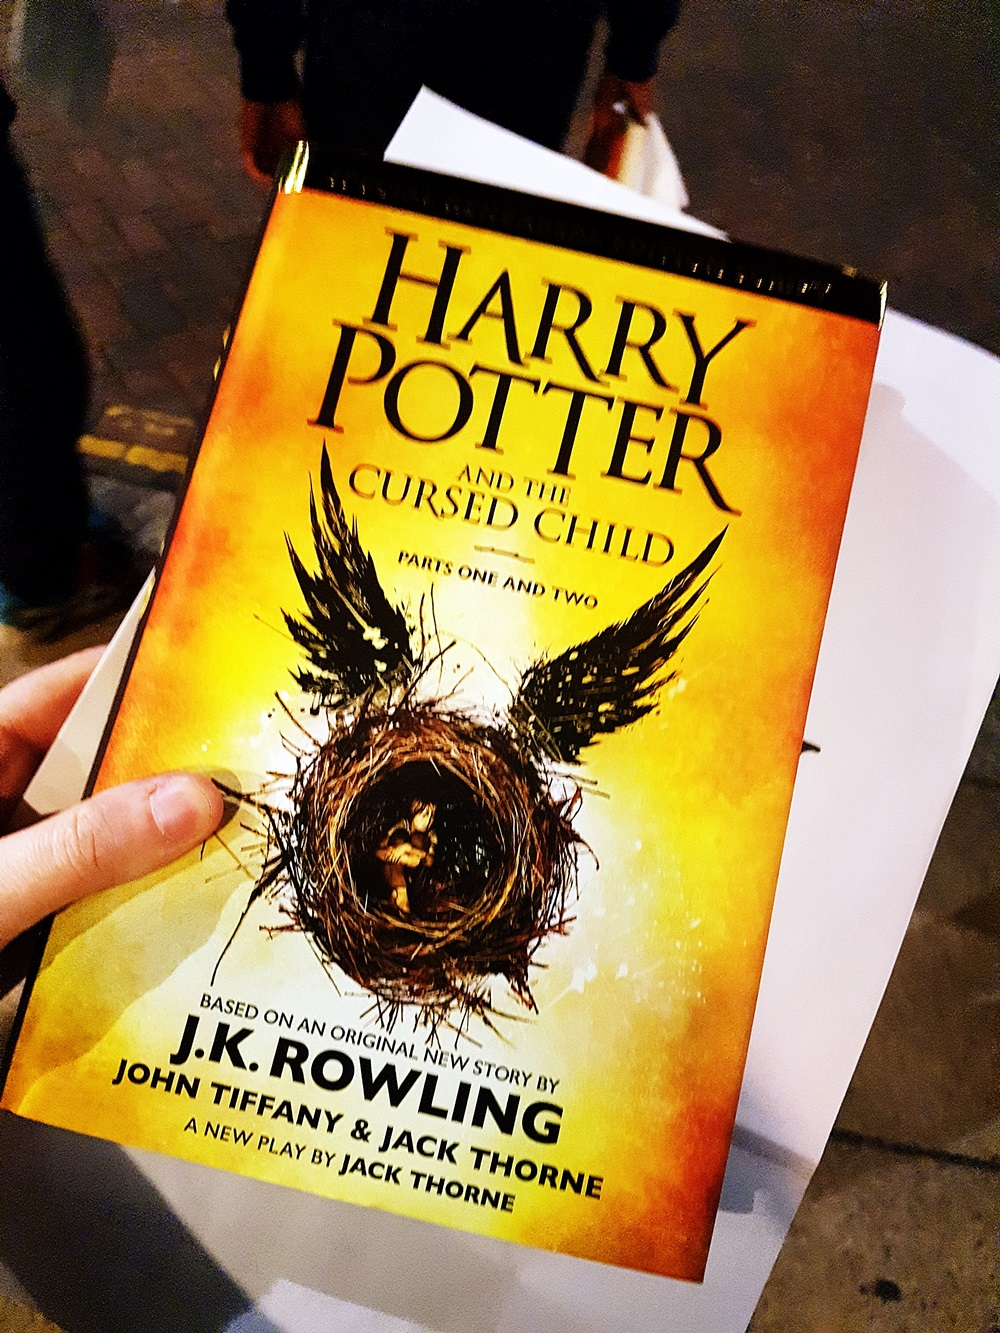 The new Harry Potter book at Cursed Child Book Launch at Waterstones Leeds